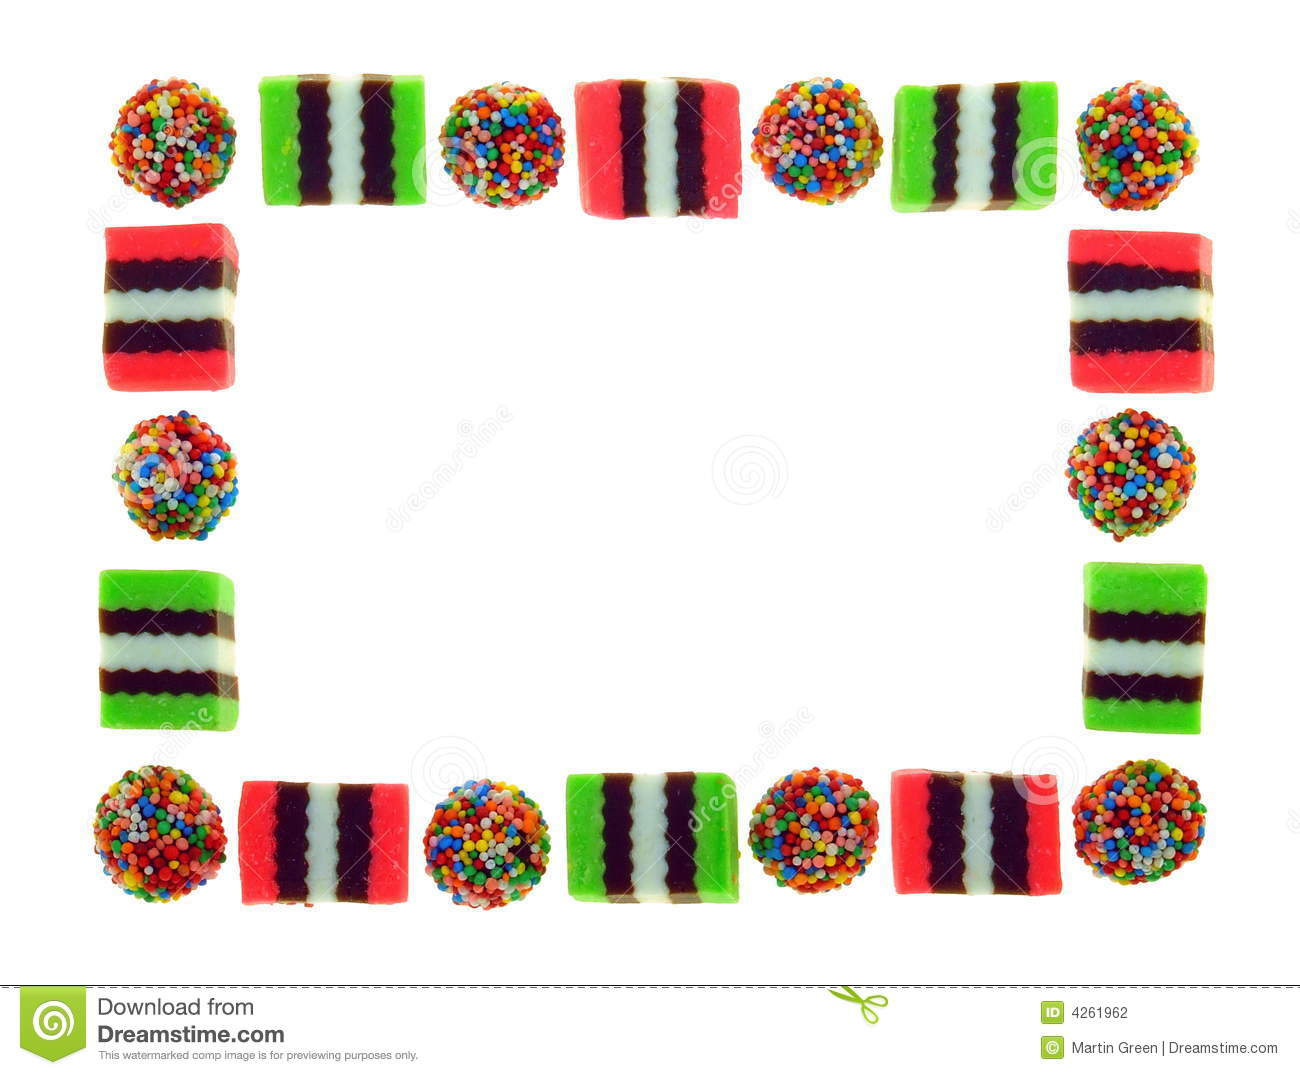 Licorice Allsorts Stock Photos, Images, & Pictures.